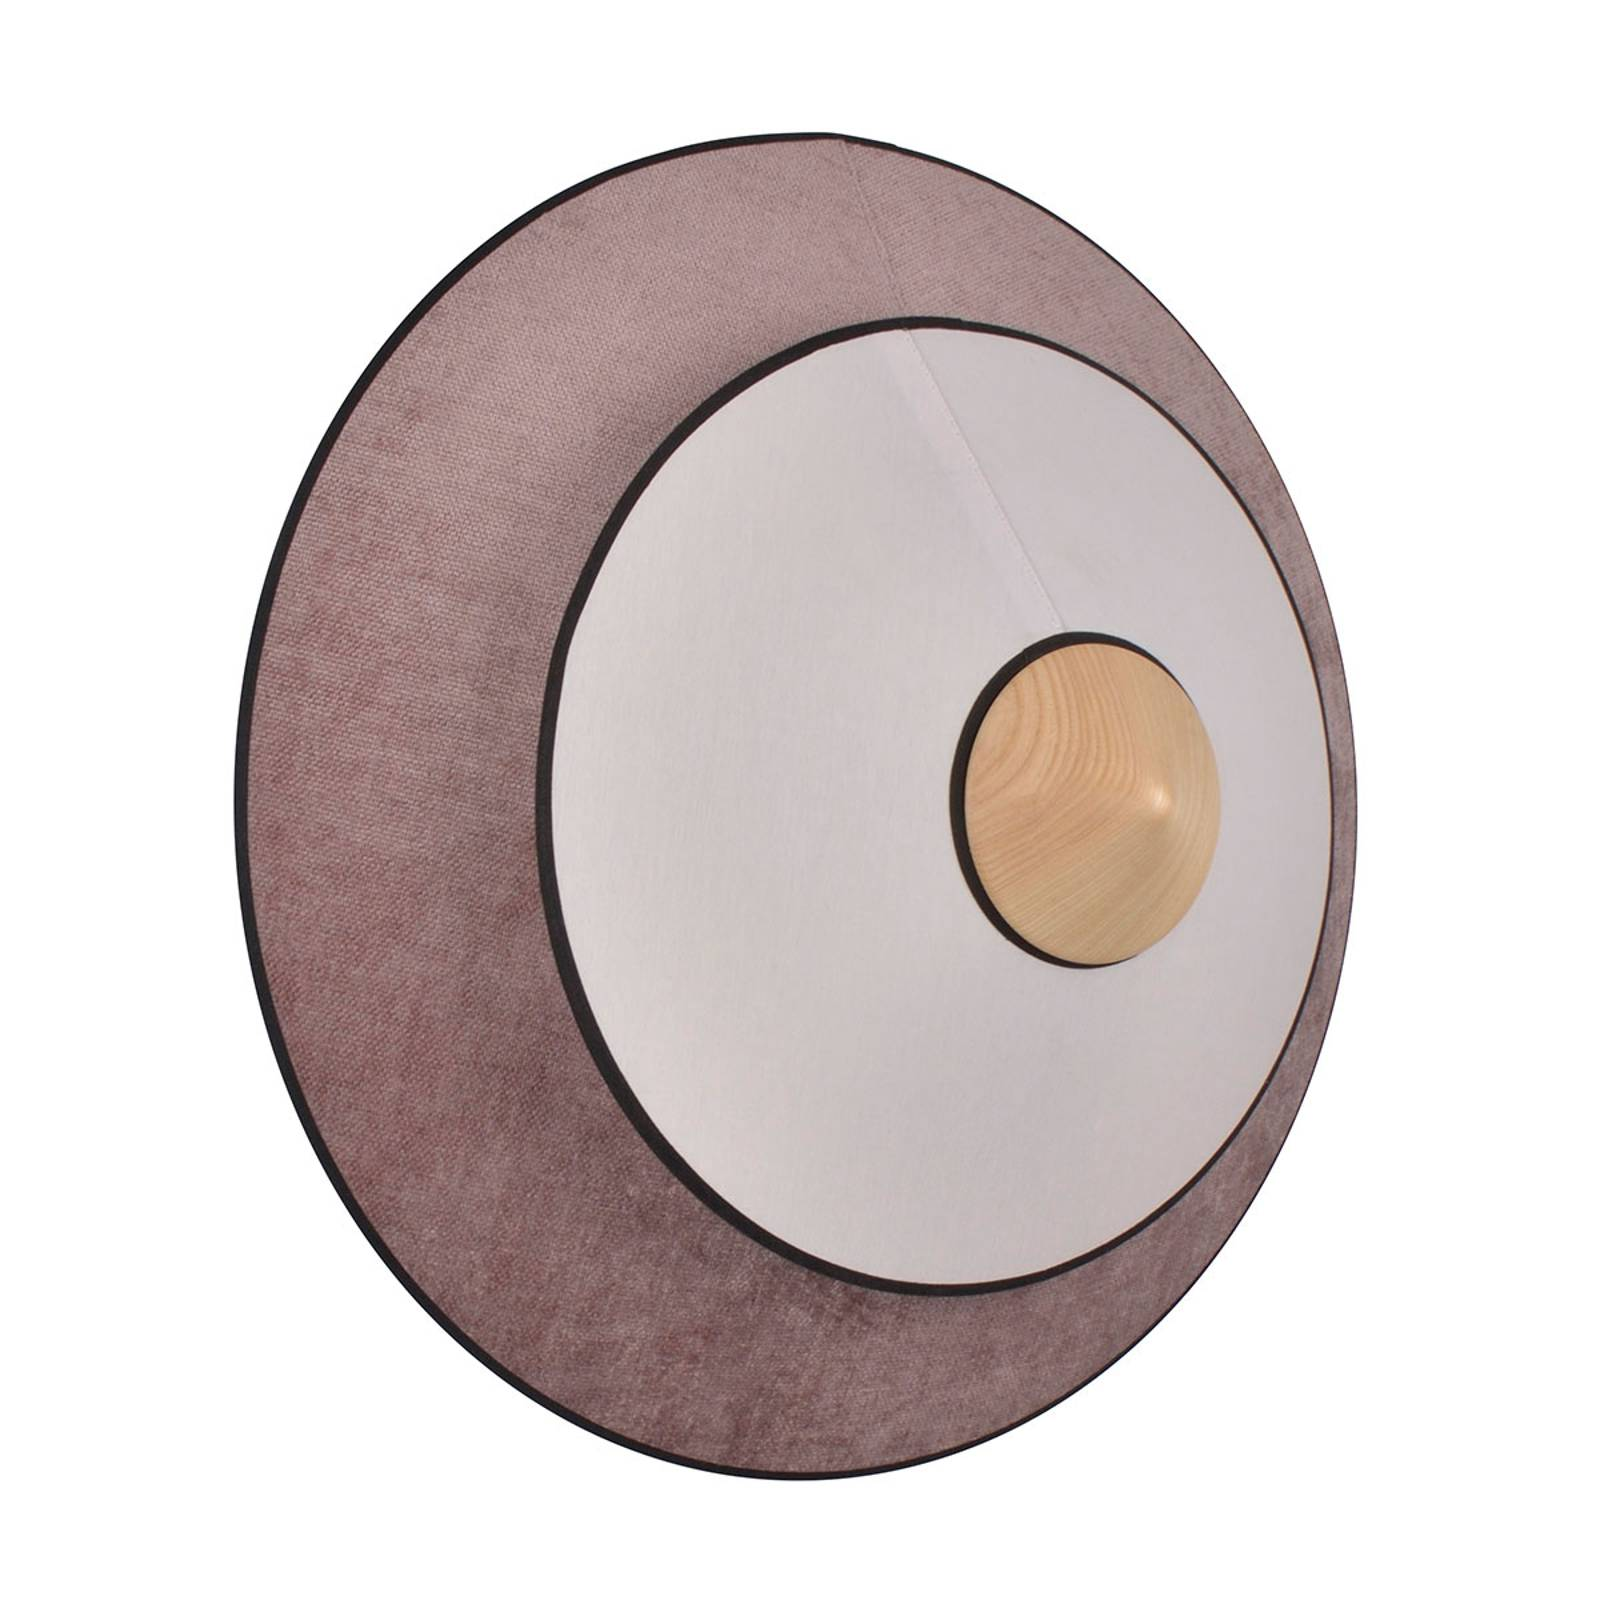 Forestier Cymbal S LED-Wandleuchte, puderrosa